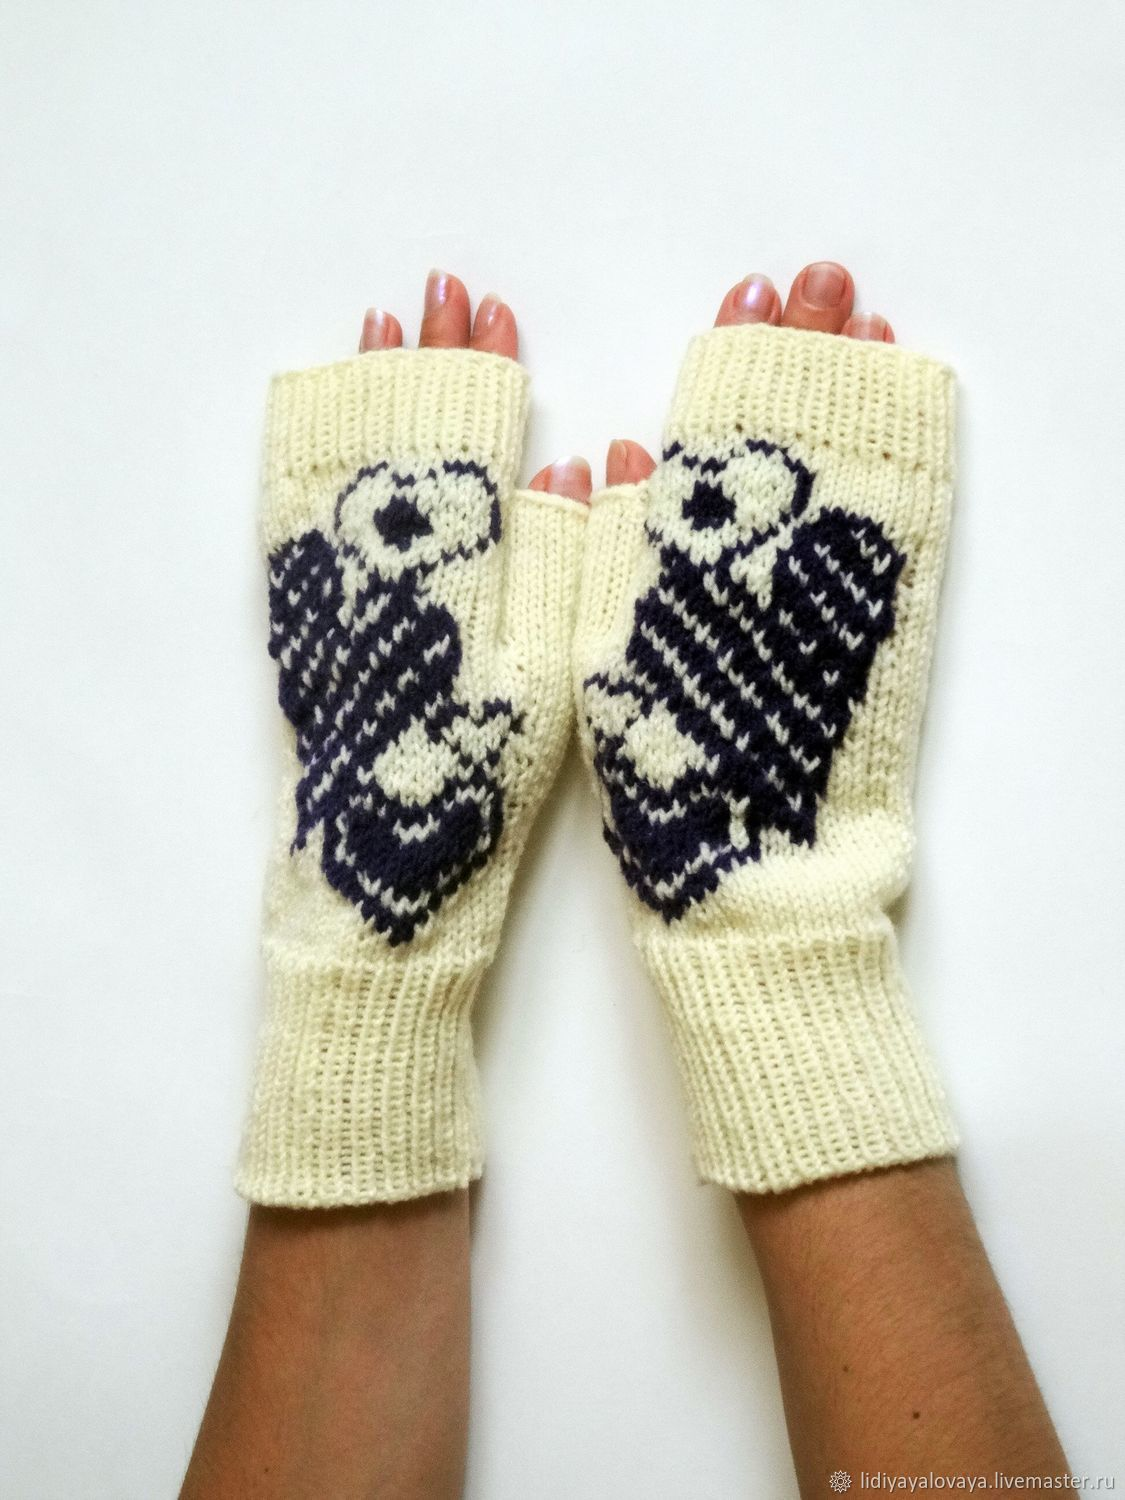 mitts, mitts to buy fingerless gloves winter, fingerless gloves for women, fingerless gloves autumn mittens a heathered, cream, fingerless gloves,hearts.